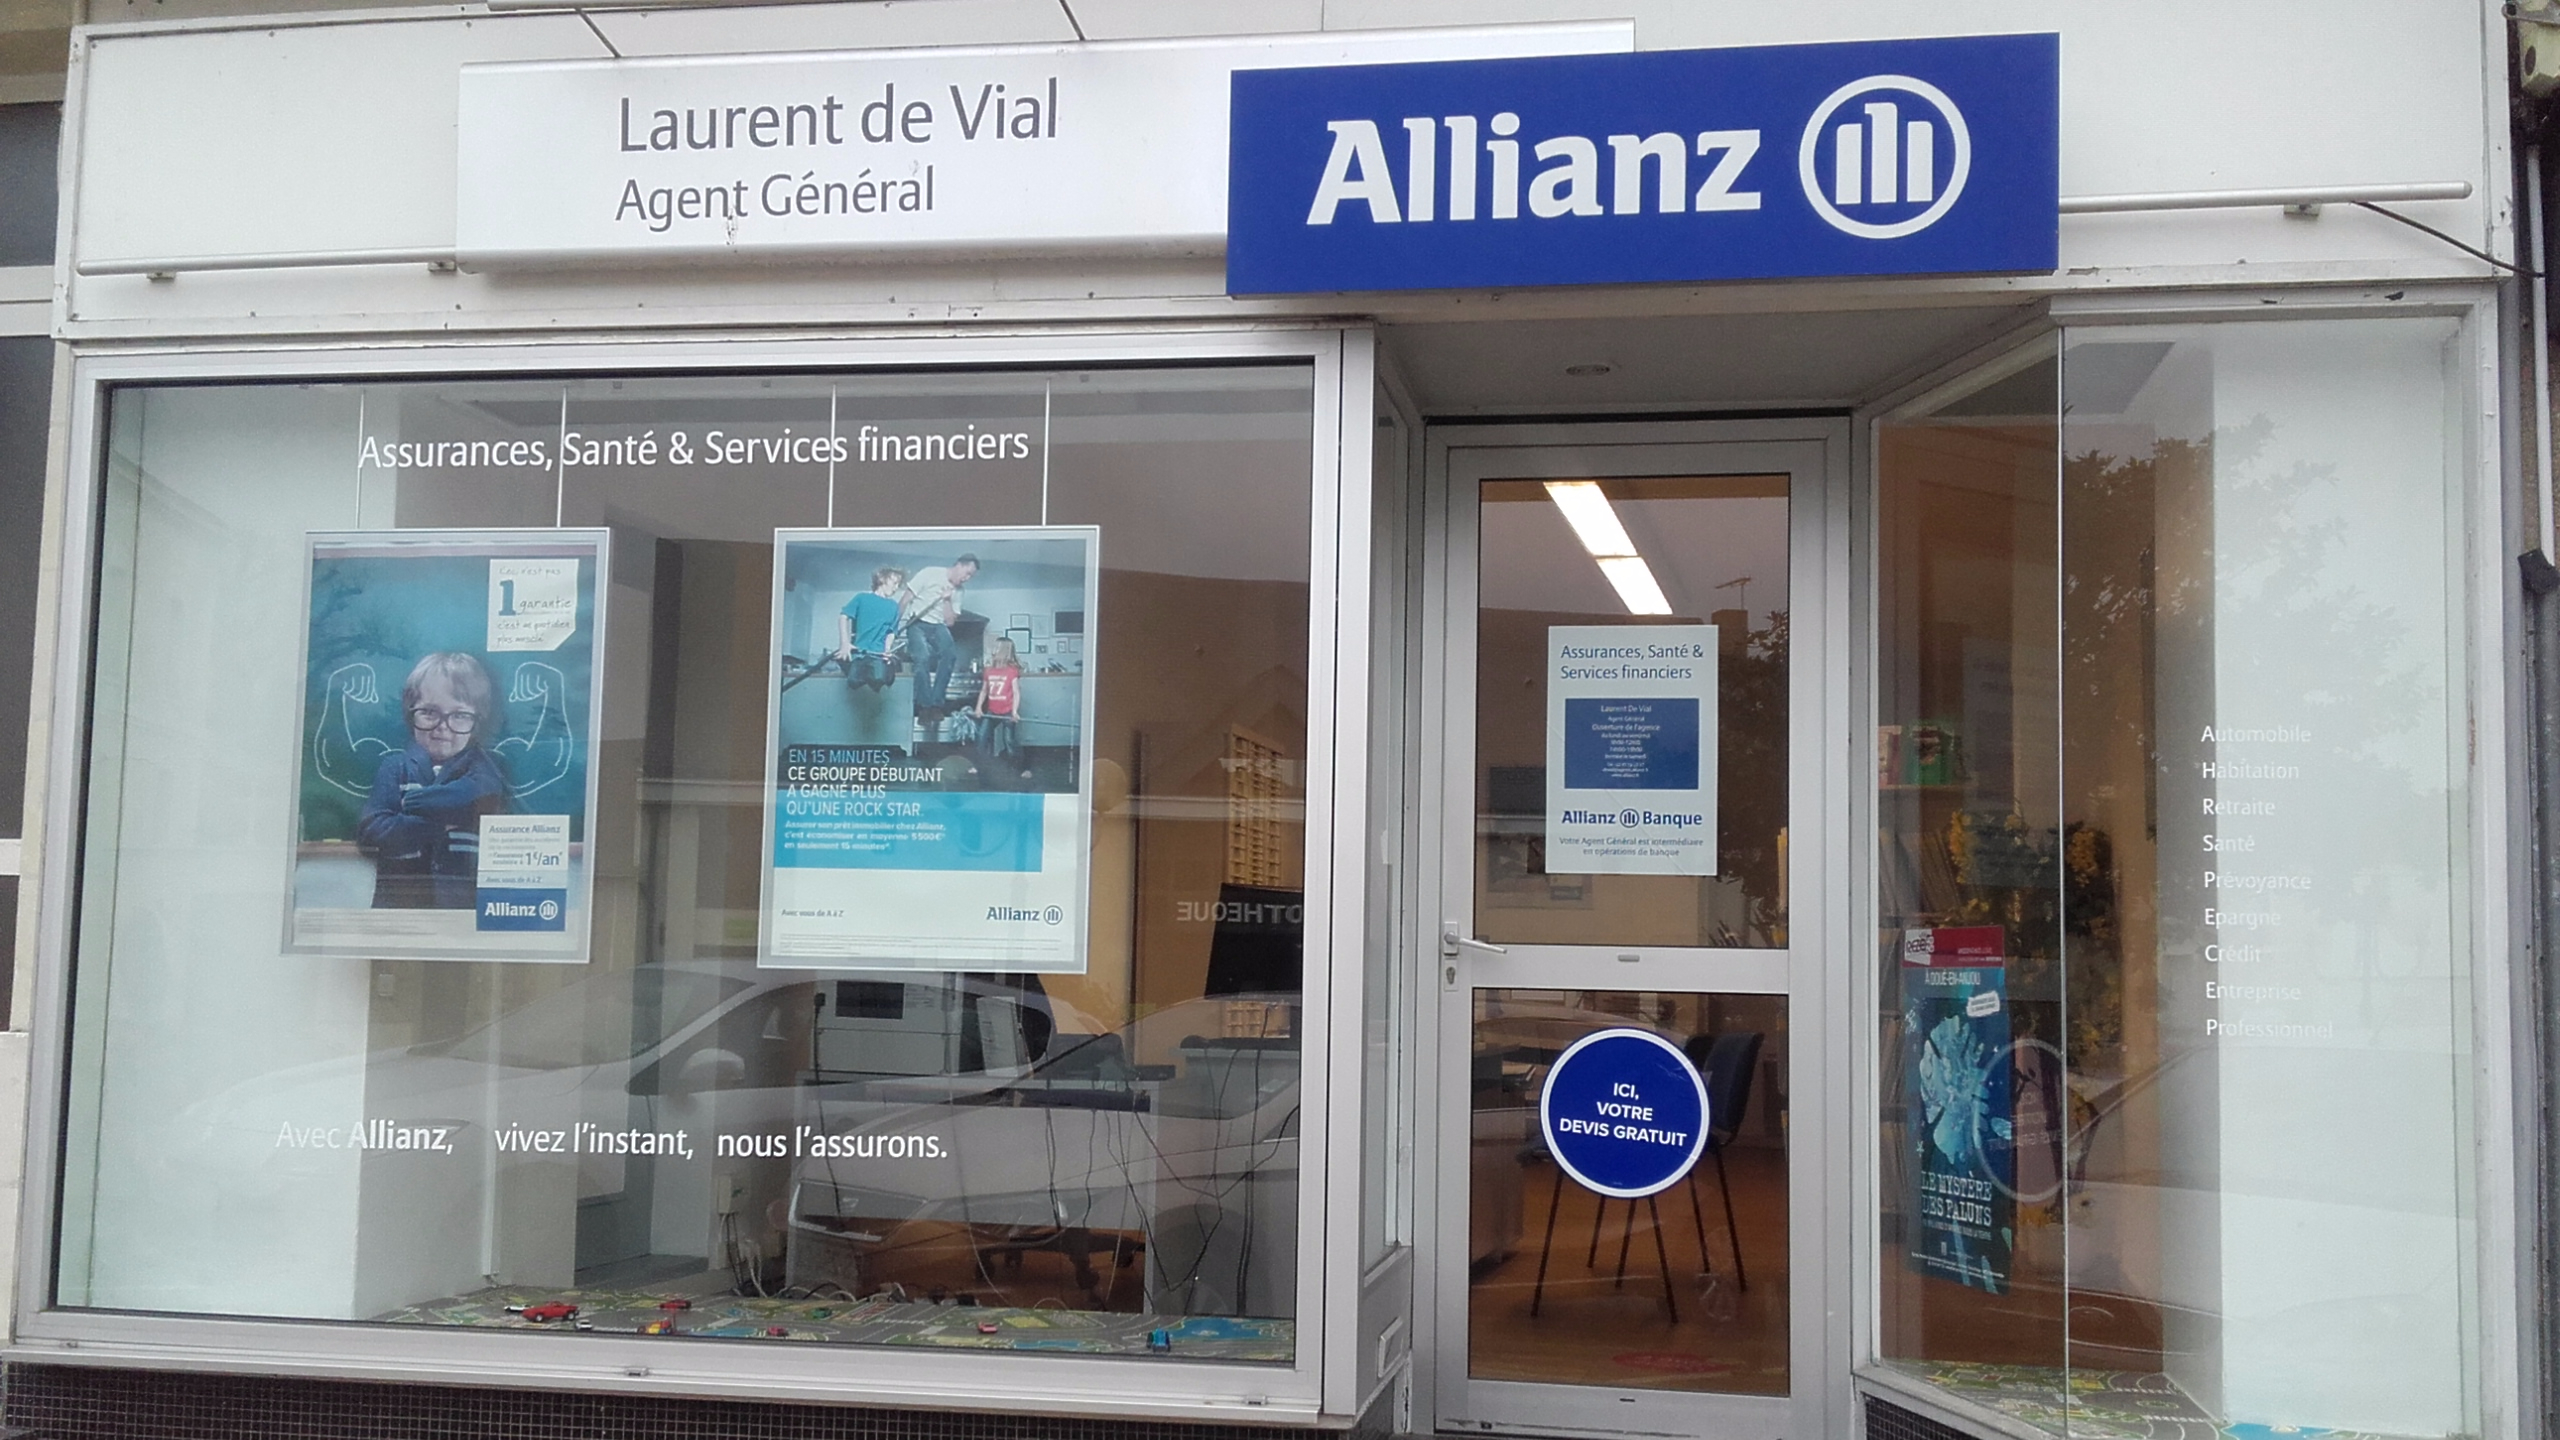 Allianz Doue la fontaine vihiers - Laurent DE VIAL